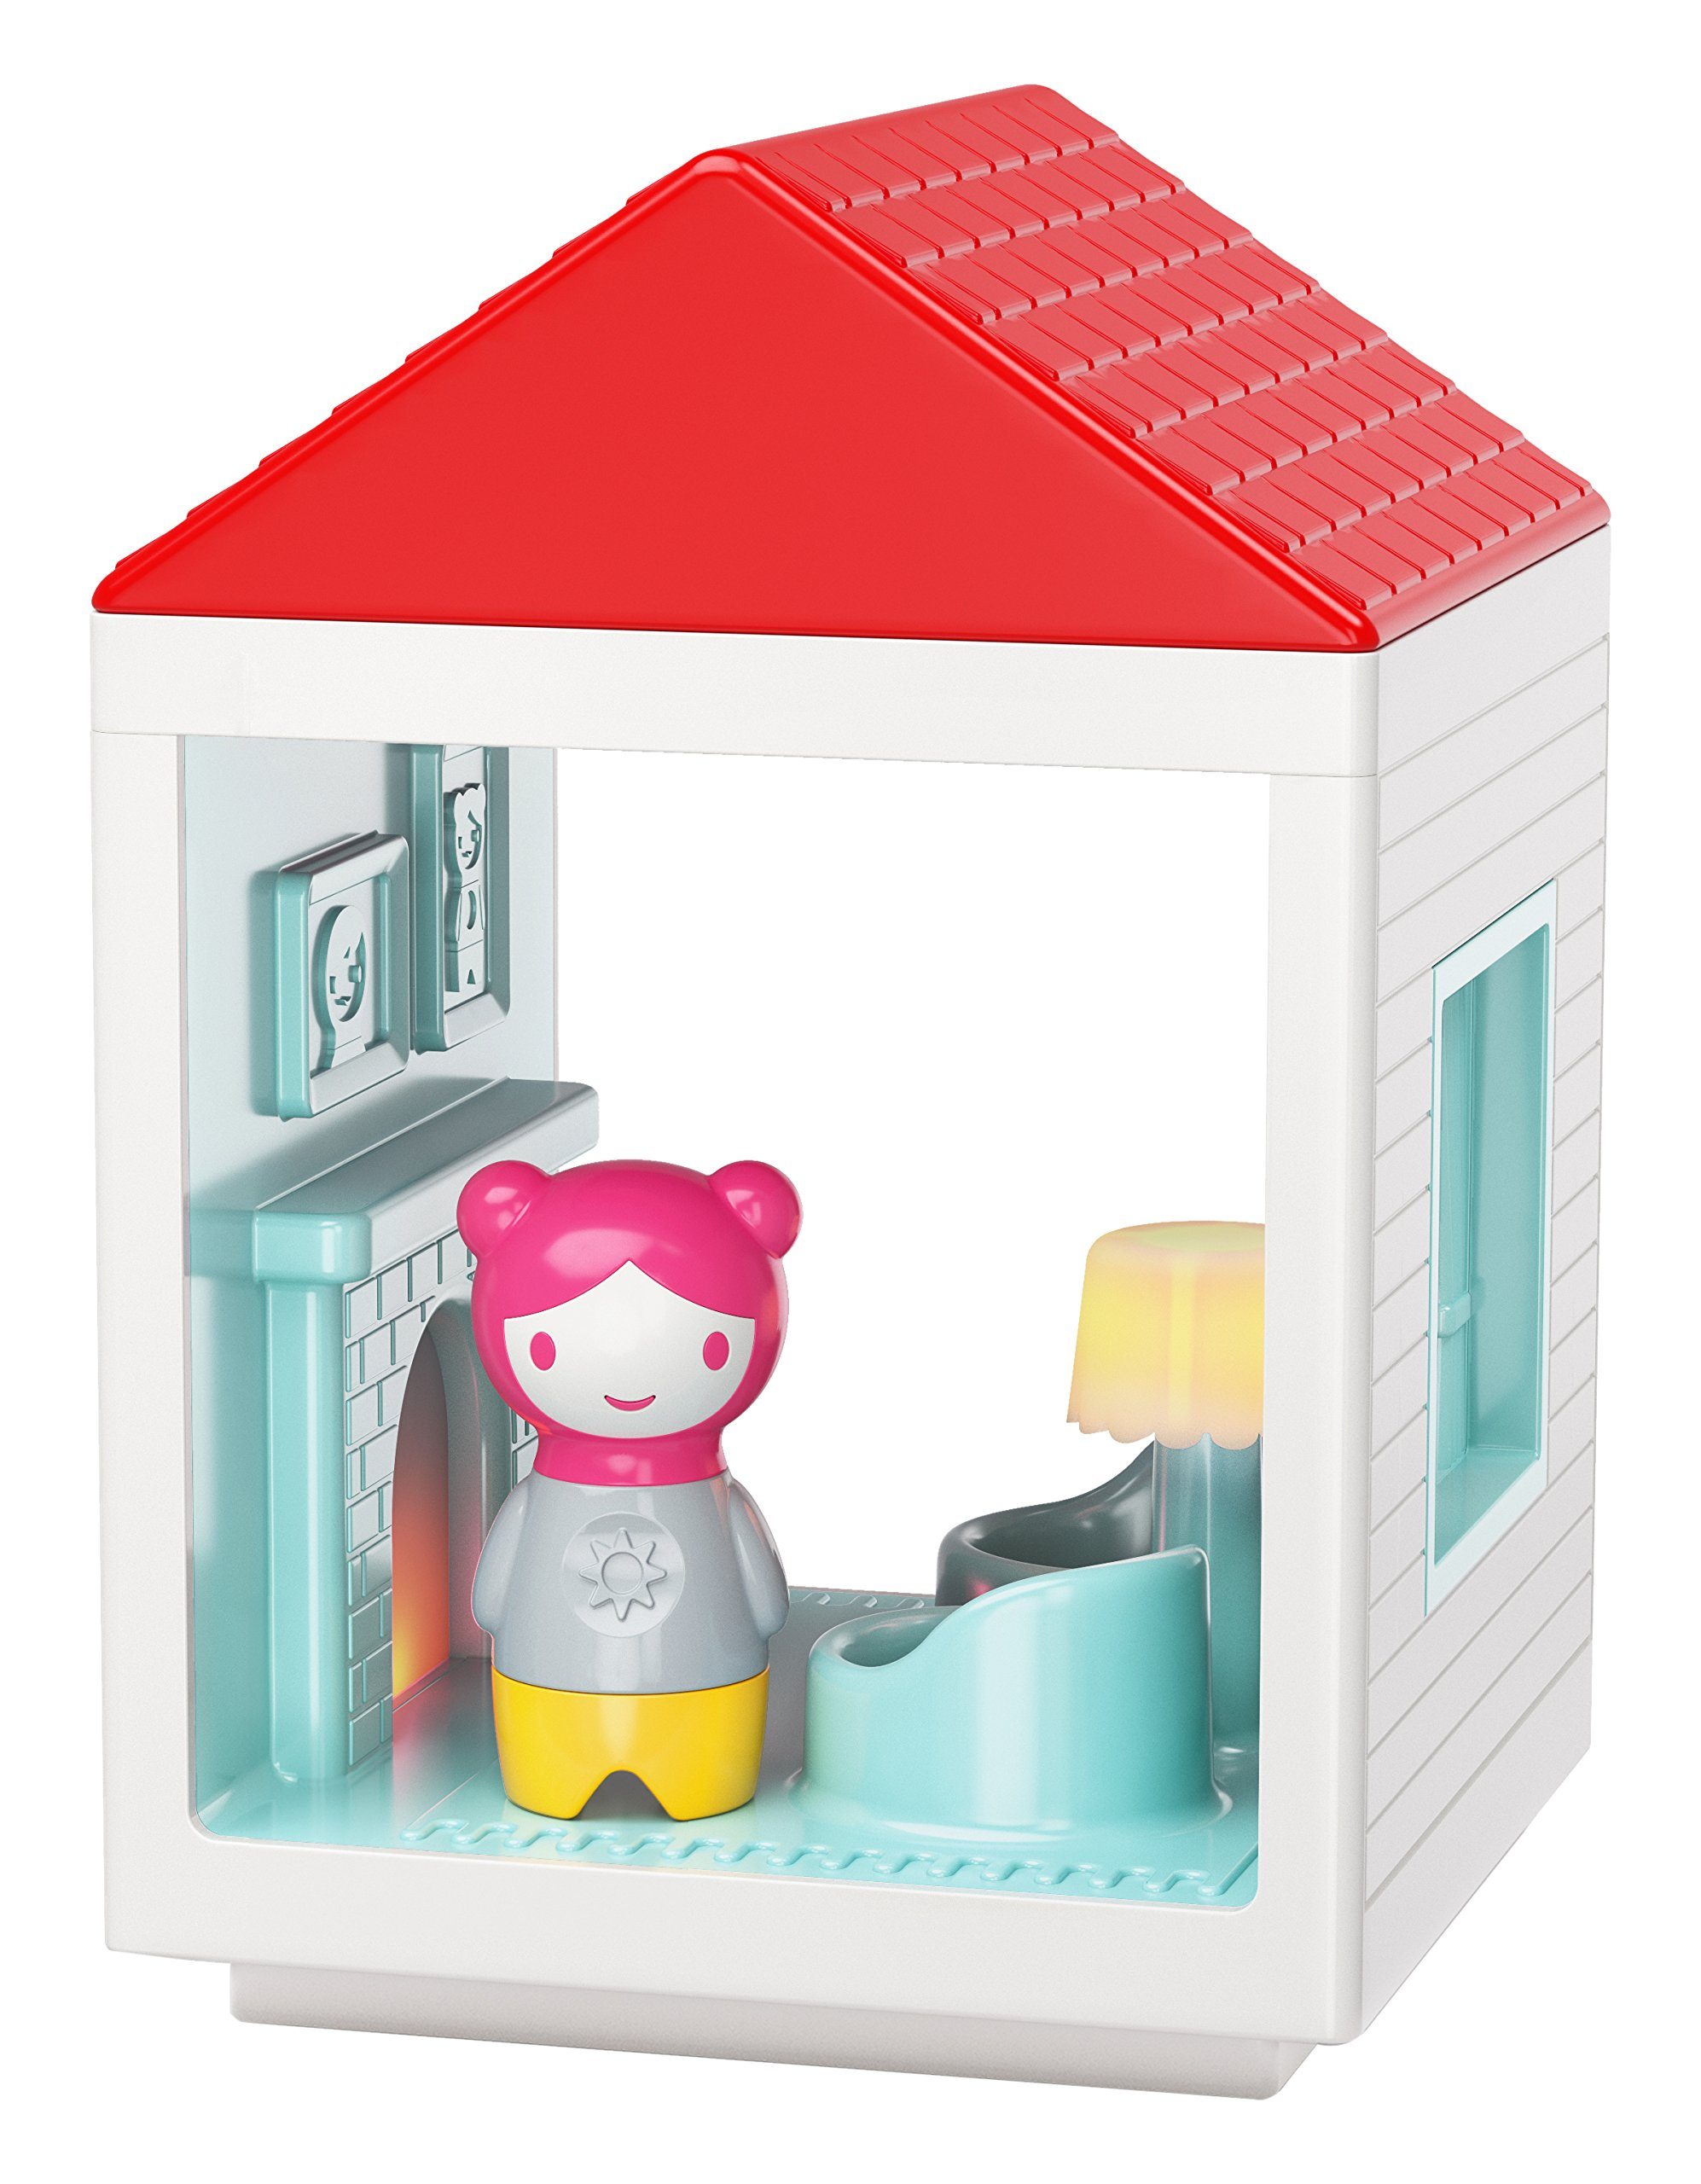 Kid O Myland Play House Living Room & Friend Interactive Learning Toy